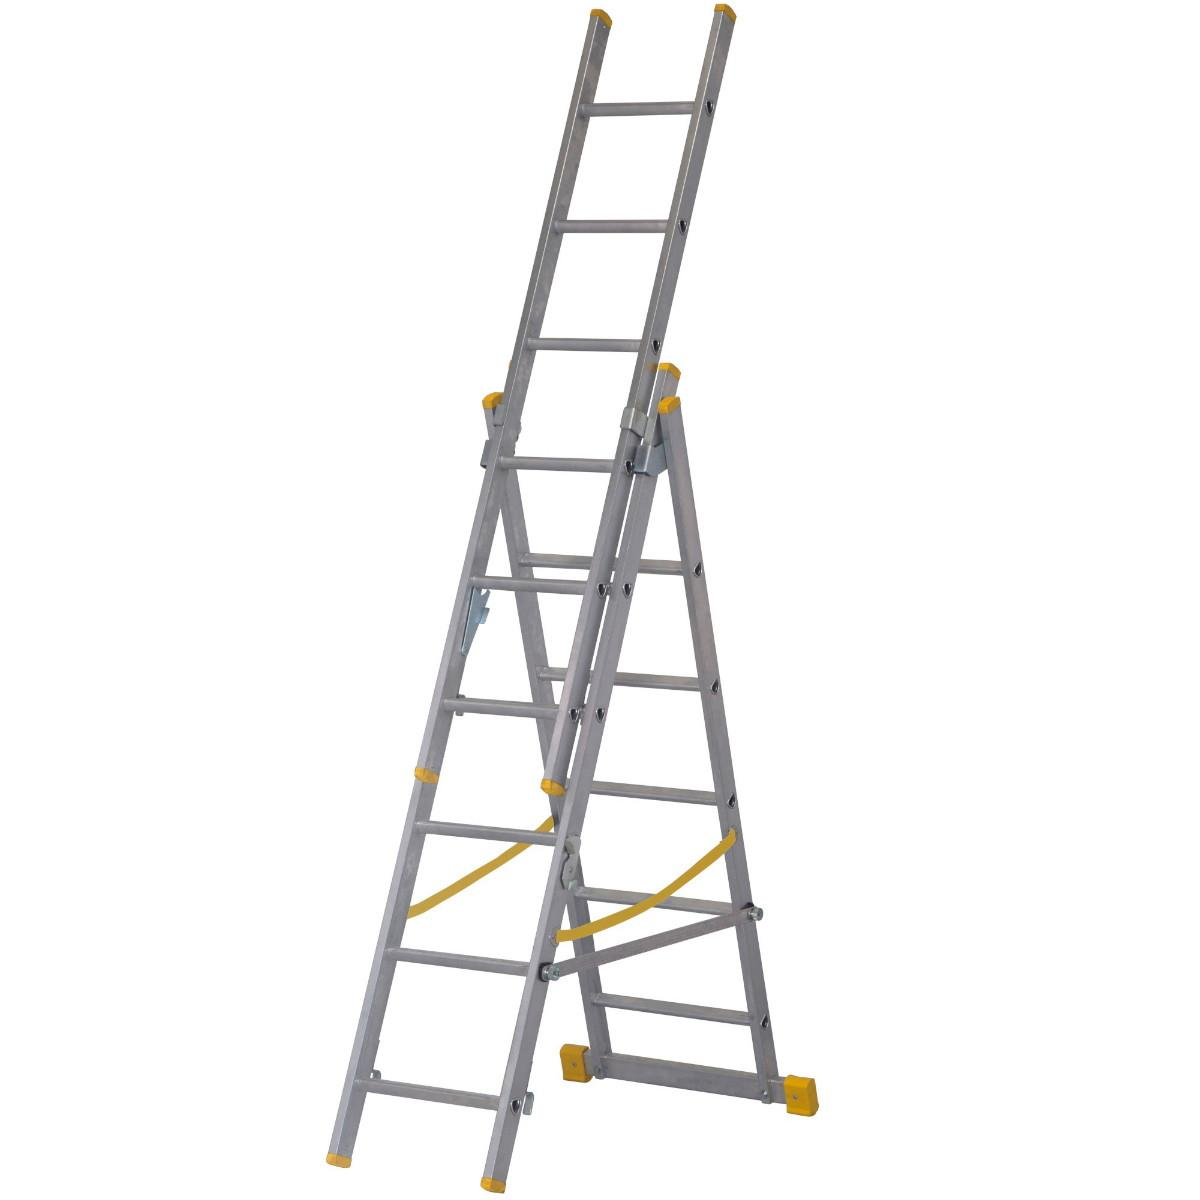 Youngman 34038118 Combi 100 X4 Combination Ladder; Aluminium; EN131 2018; 1.92m - 3.48m; Height To Top Tread In Step Ladder Configuration 2.7 Metre; 3 x 6 Rung